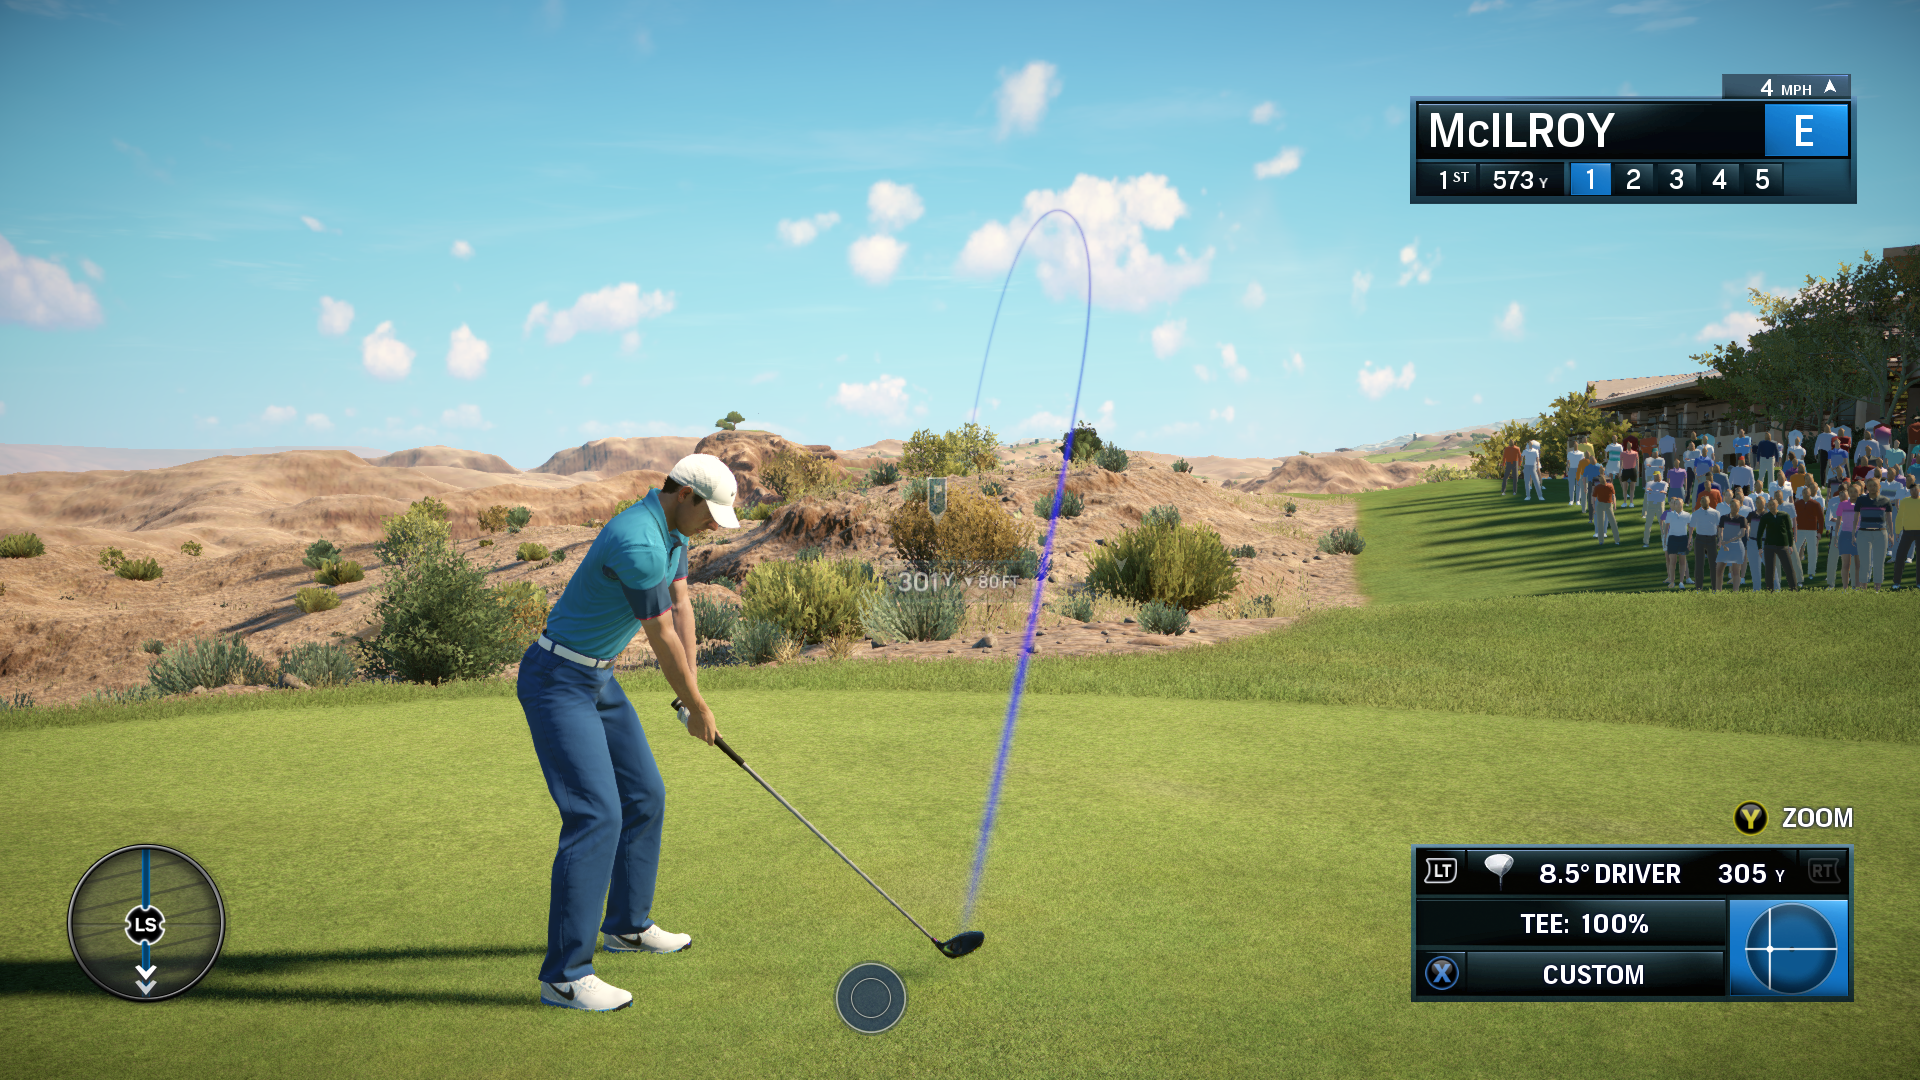 PGA Tour's analog stick swinging takes a bit of getting used to.